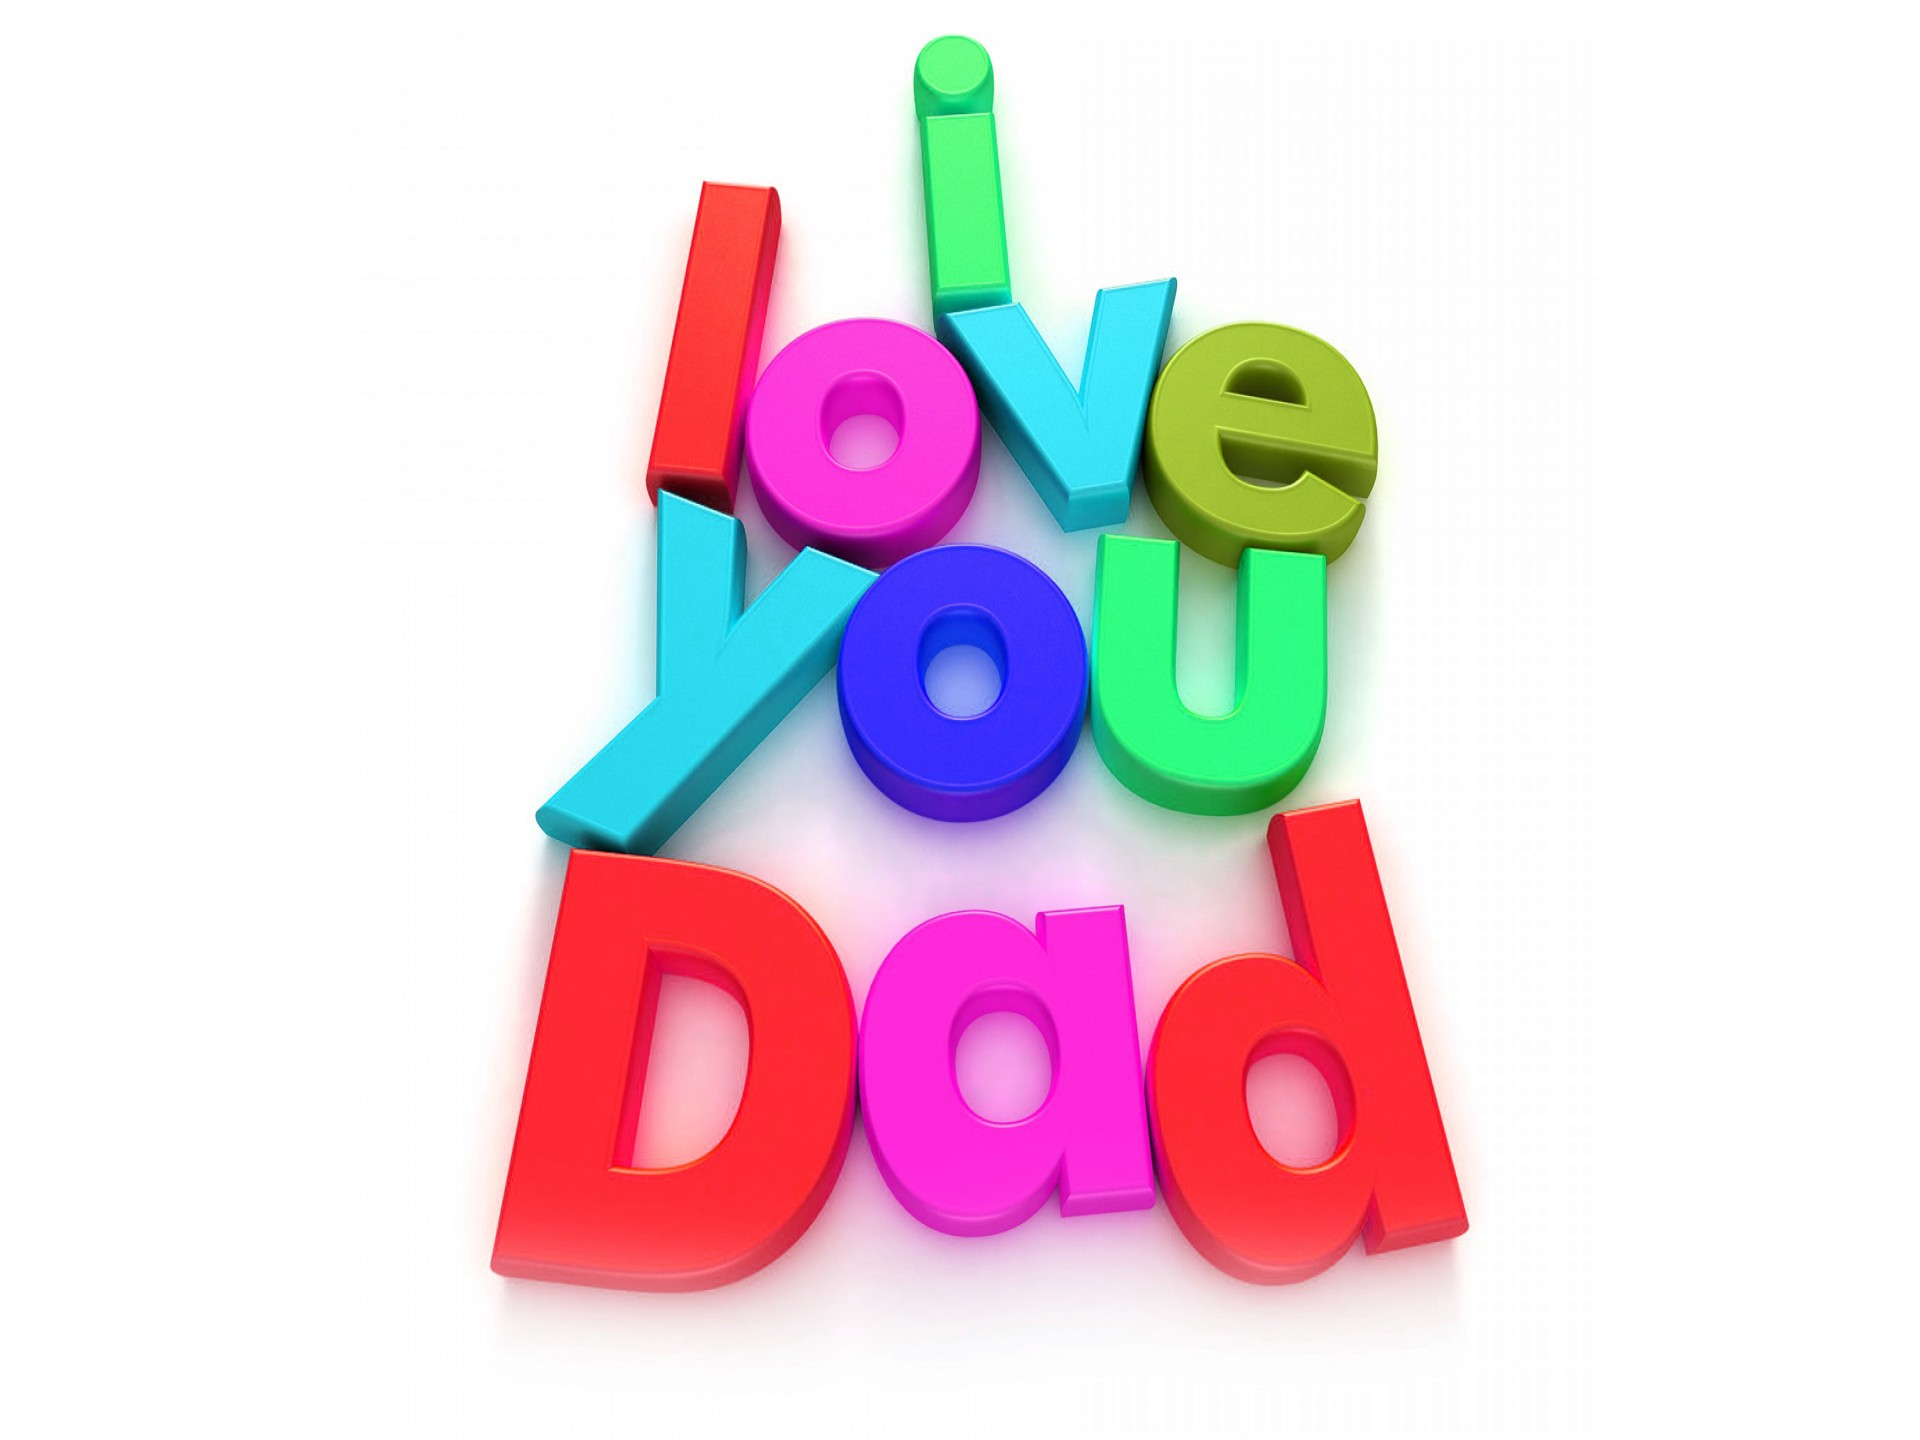 I Love You Dad Fathers Day Wallpaper - HD Wallpaper